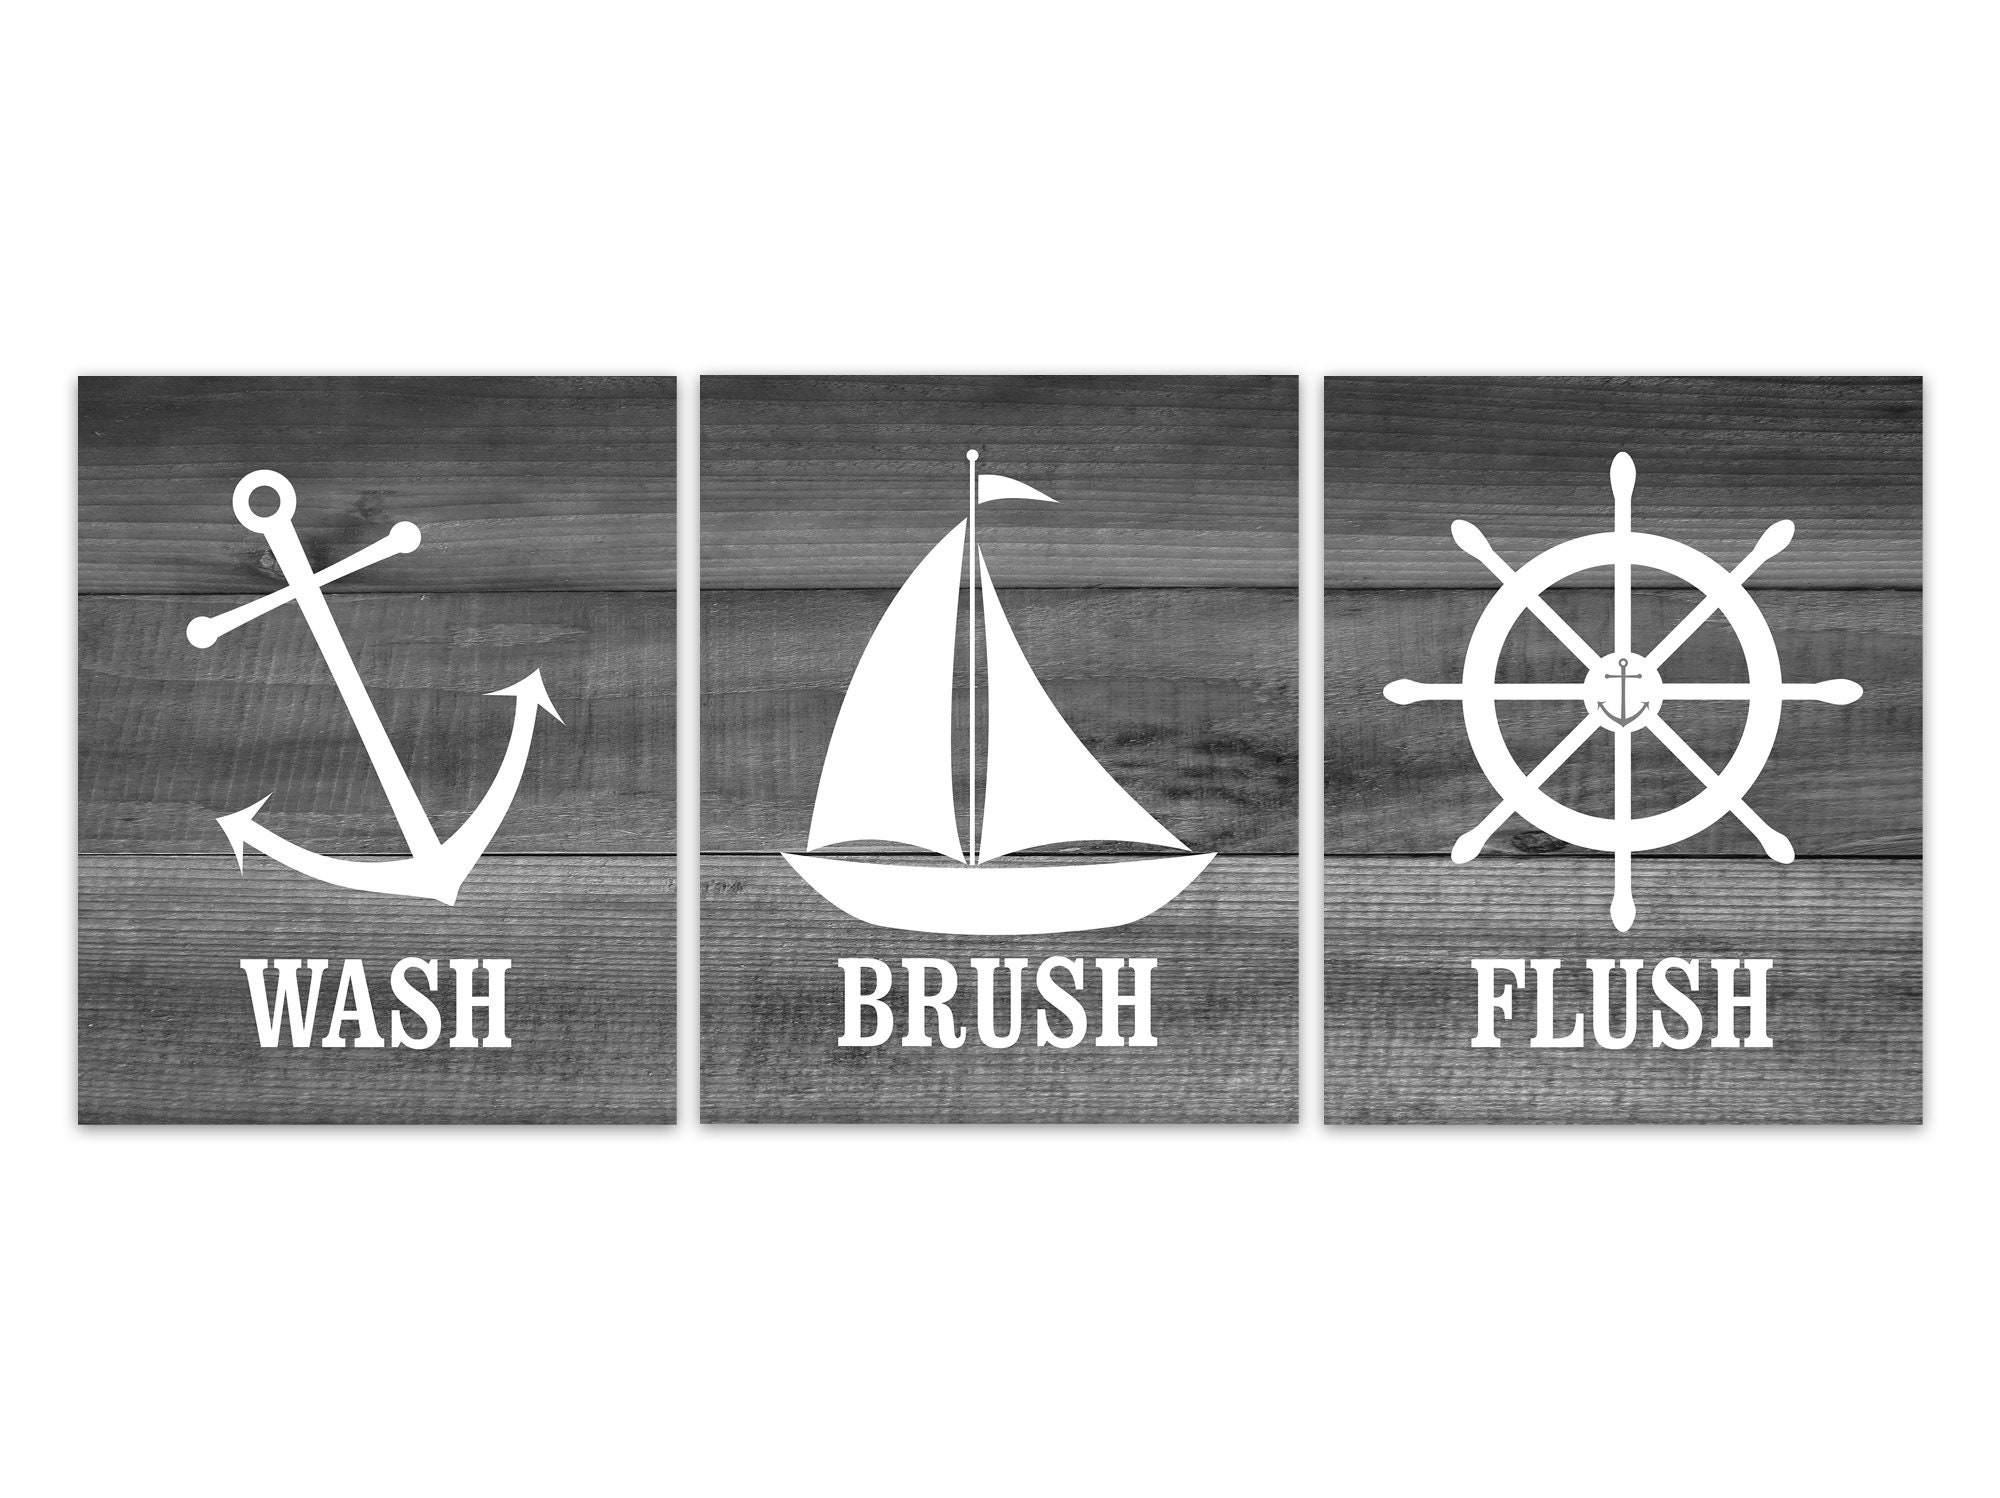 Nautical Bathroom Rules Pictures, Wash Brush Flush CANVAS Or PRINTS, Set Of  3 Kids Bathroom Decor, Boys Bathroom Art, Anchor Wheel   BATH246